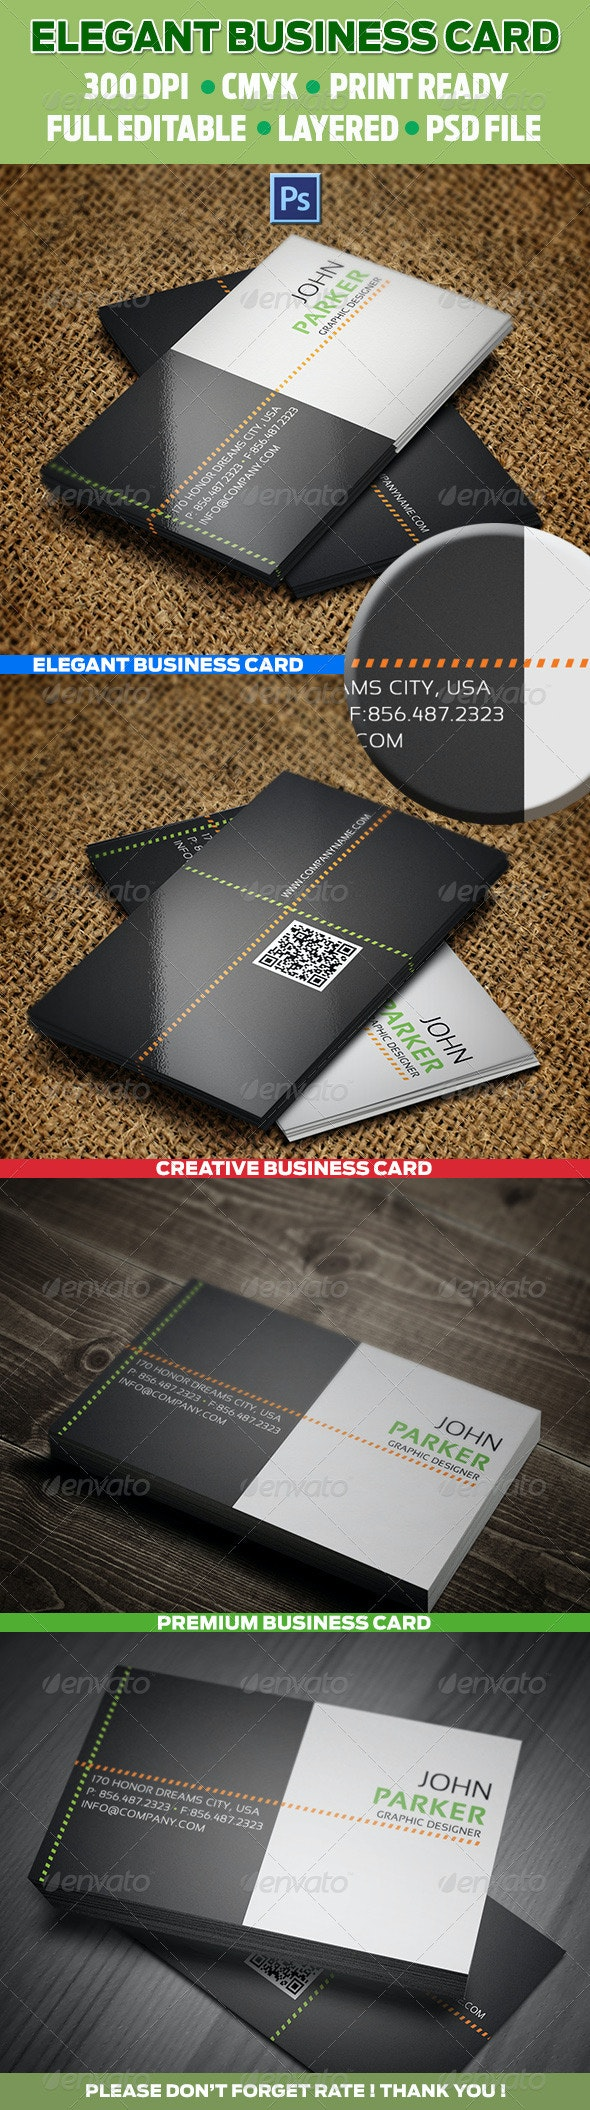 Creative Business Card 16 - Corporate Business Cards